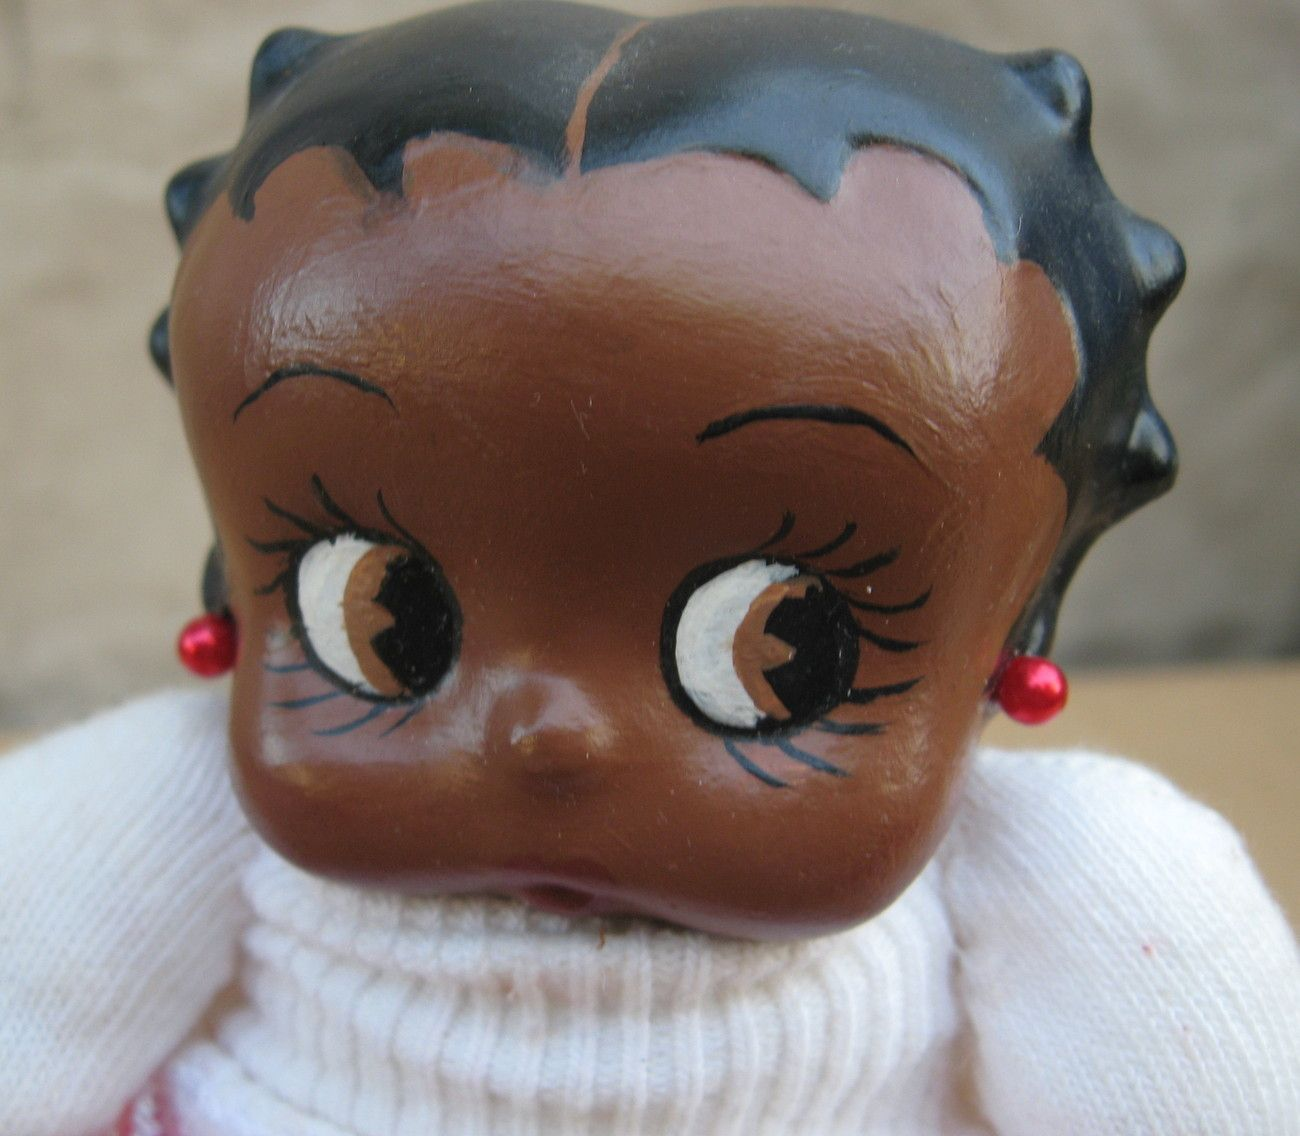 Black Betty Boop Photo Black Betty Boop Porcelain Doll African